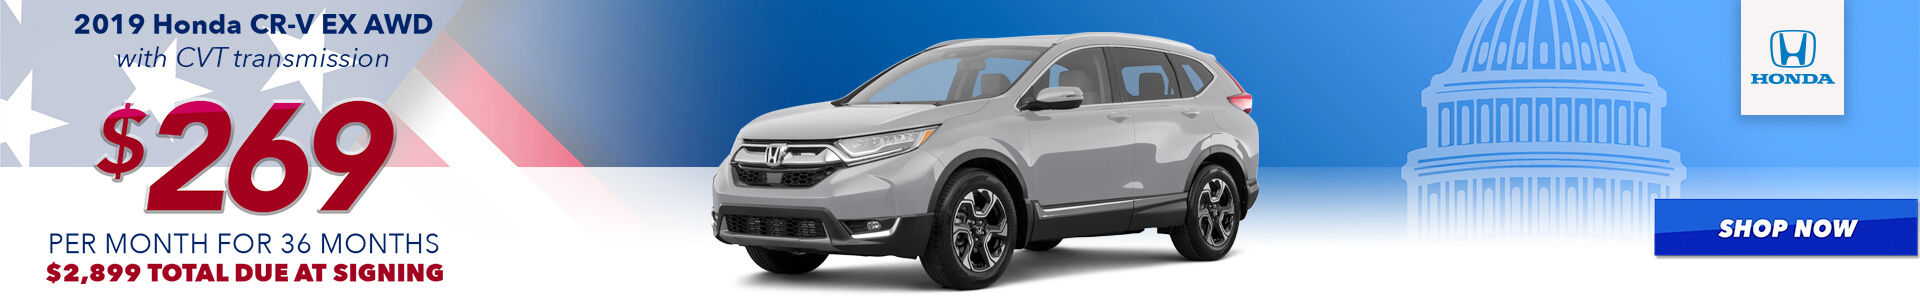 2019 CR-V - Lease for $269